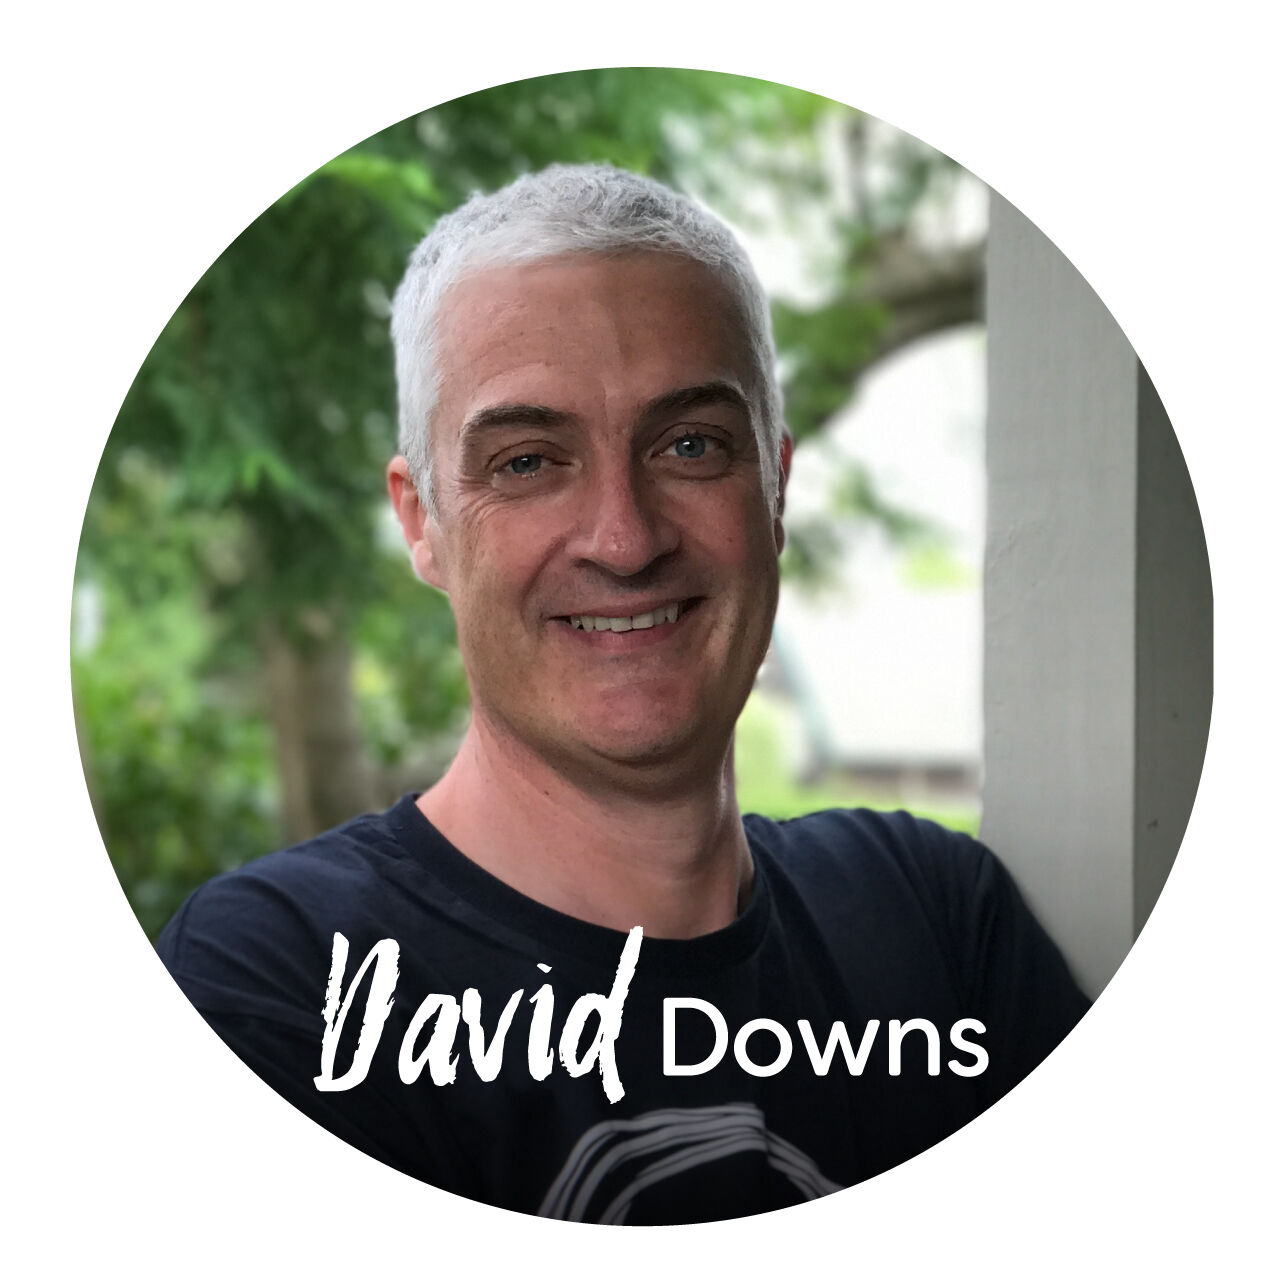 A picture of David Downs